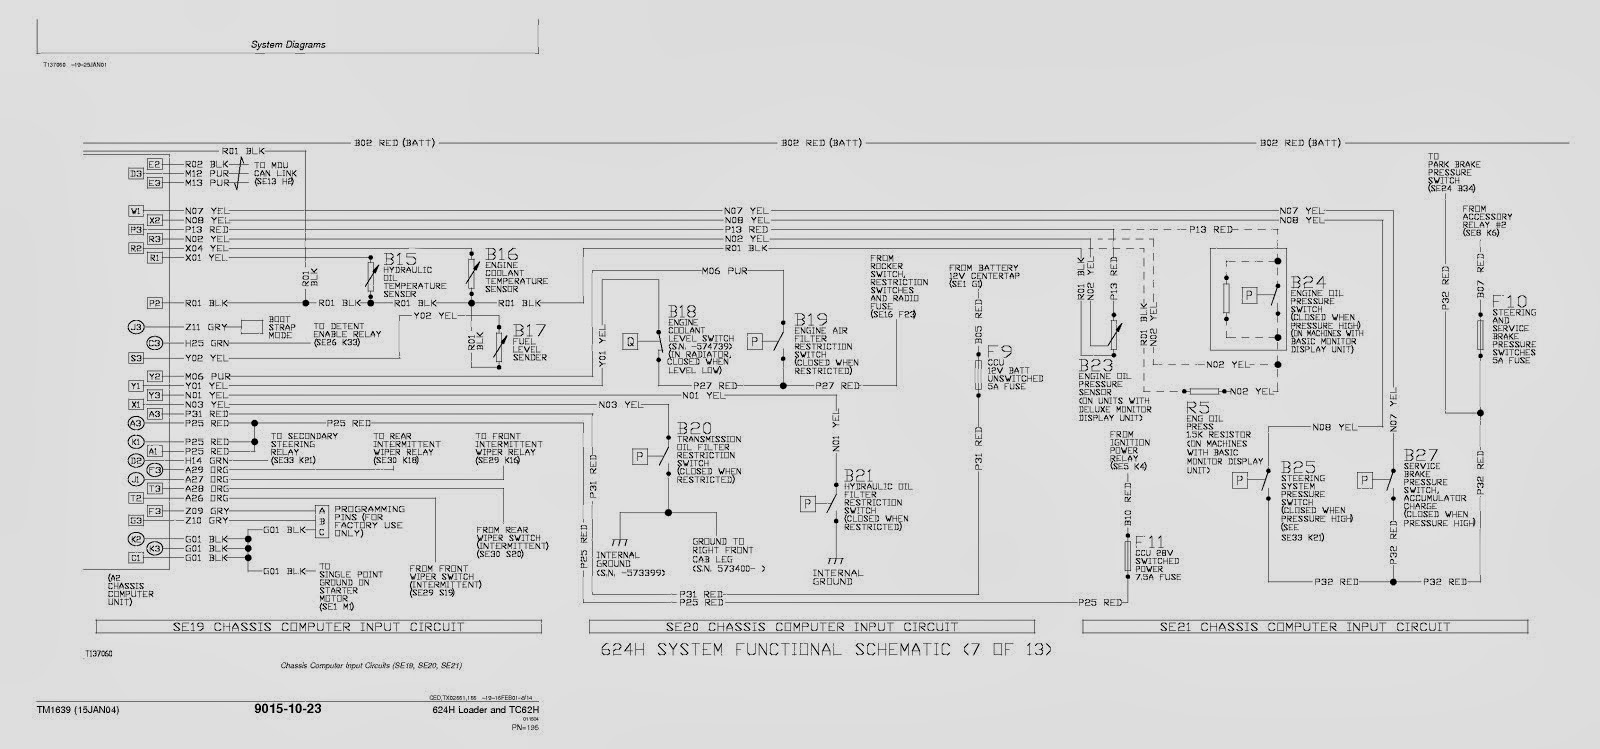 John Deere 624h Service Manual Wiring Schematic Free Owner And Workshop